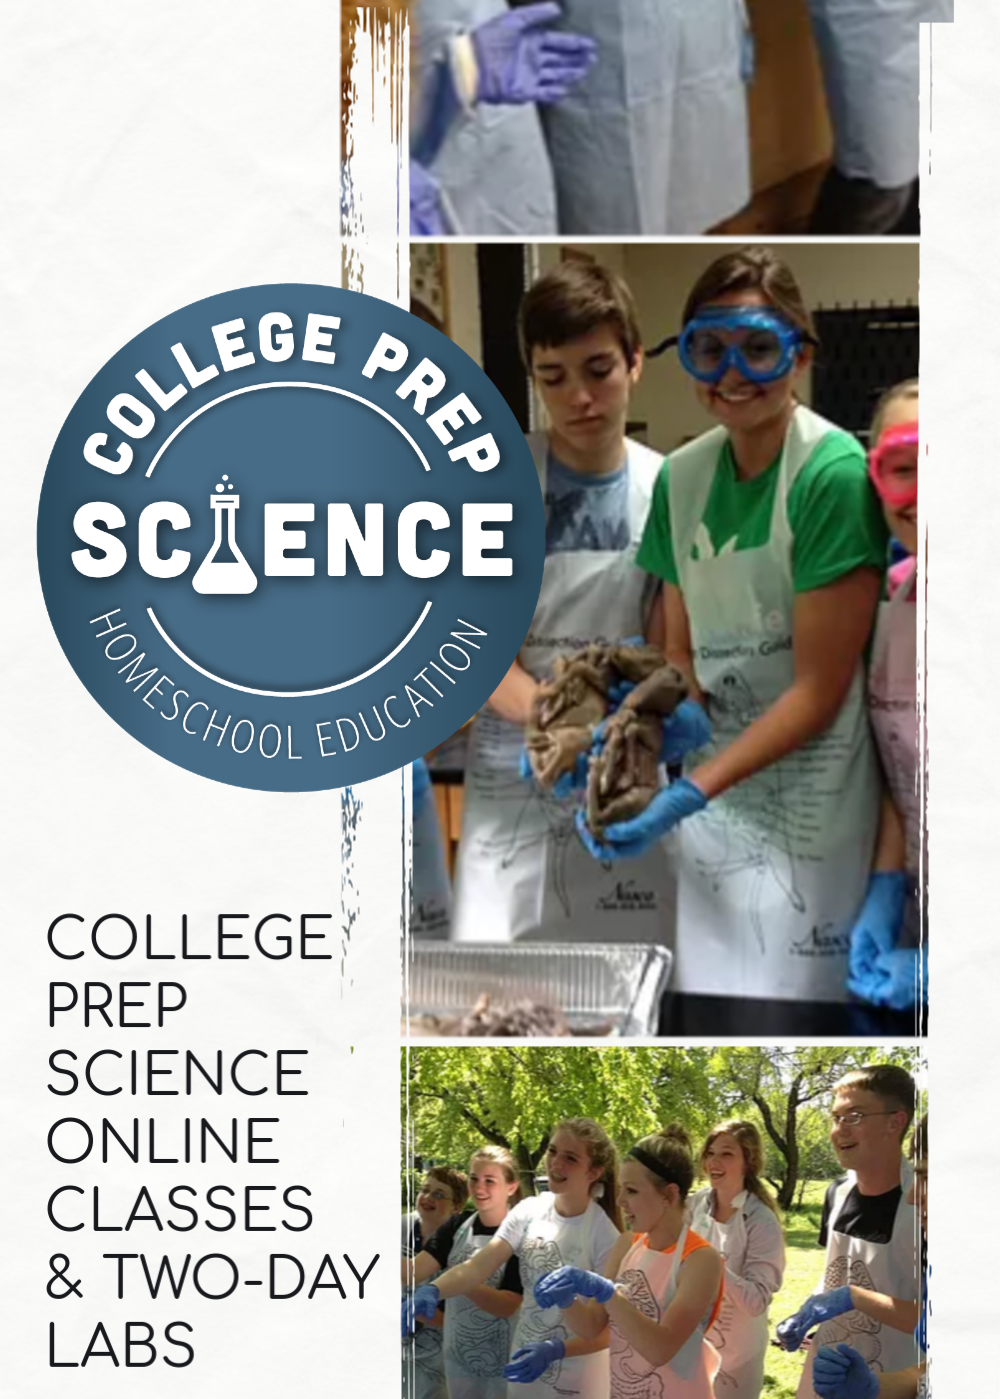 College Prep Science Online Classes for Homeschool Students and 2-Day Lab Intensives in 15 Cities Across the Country 2019-2020 School year